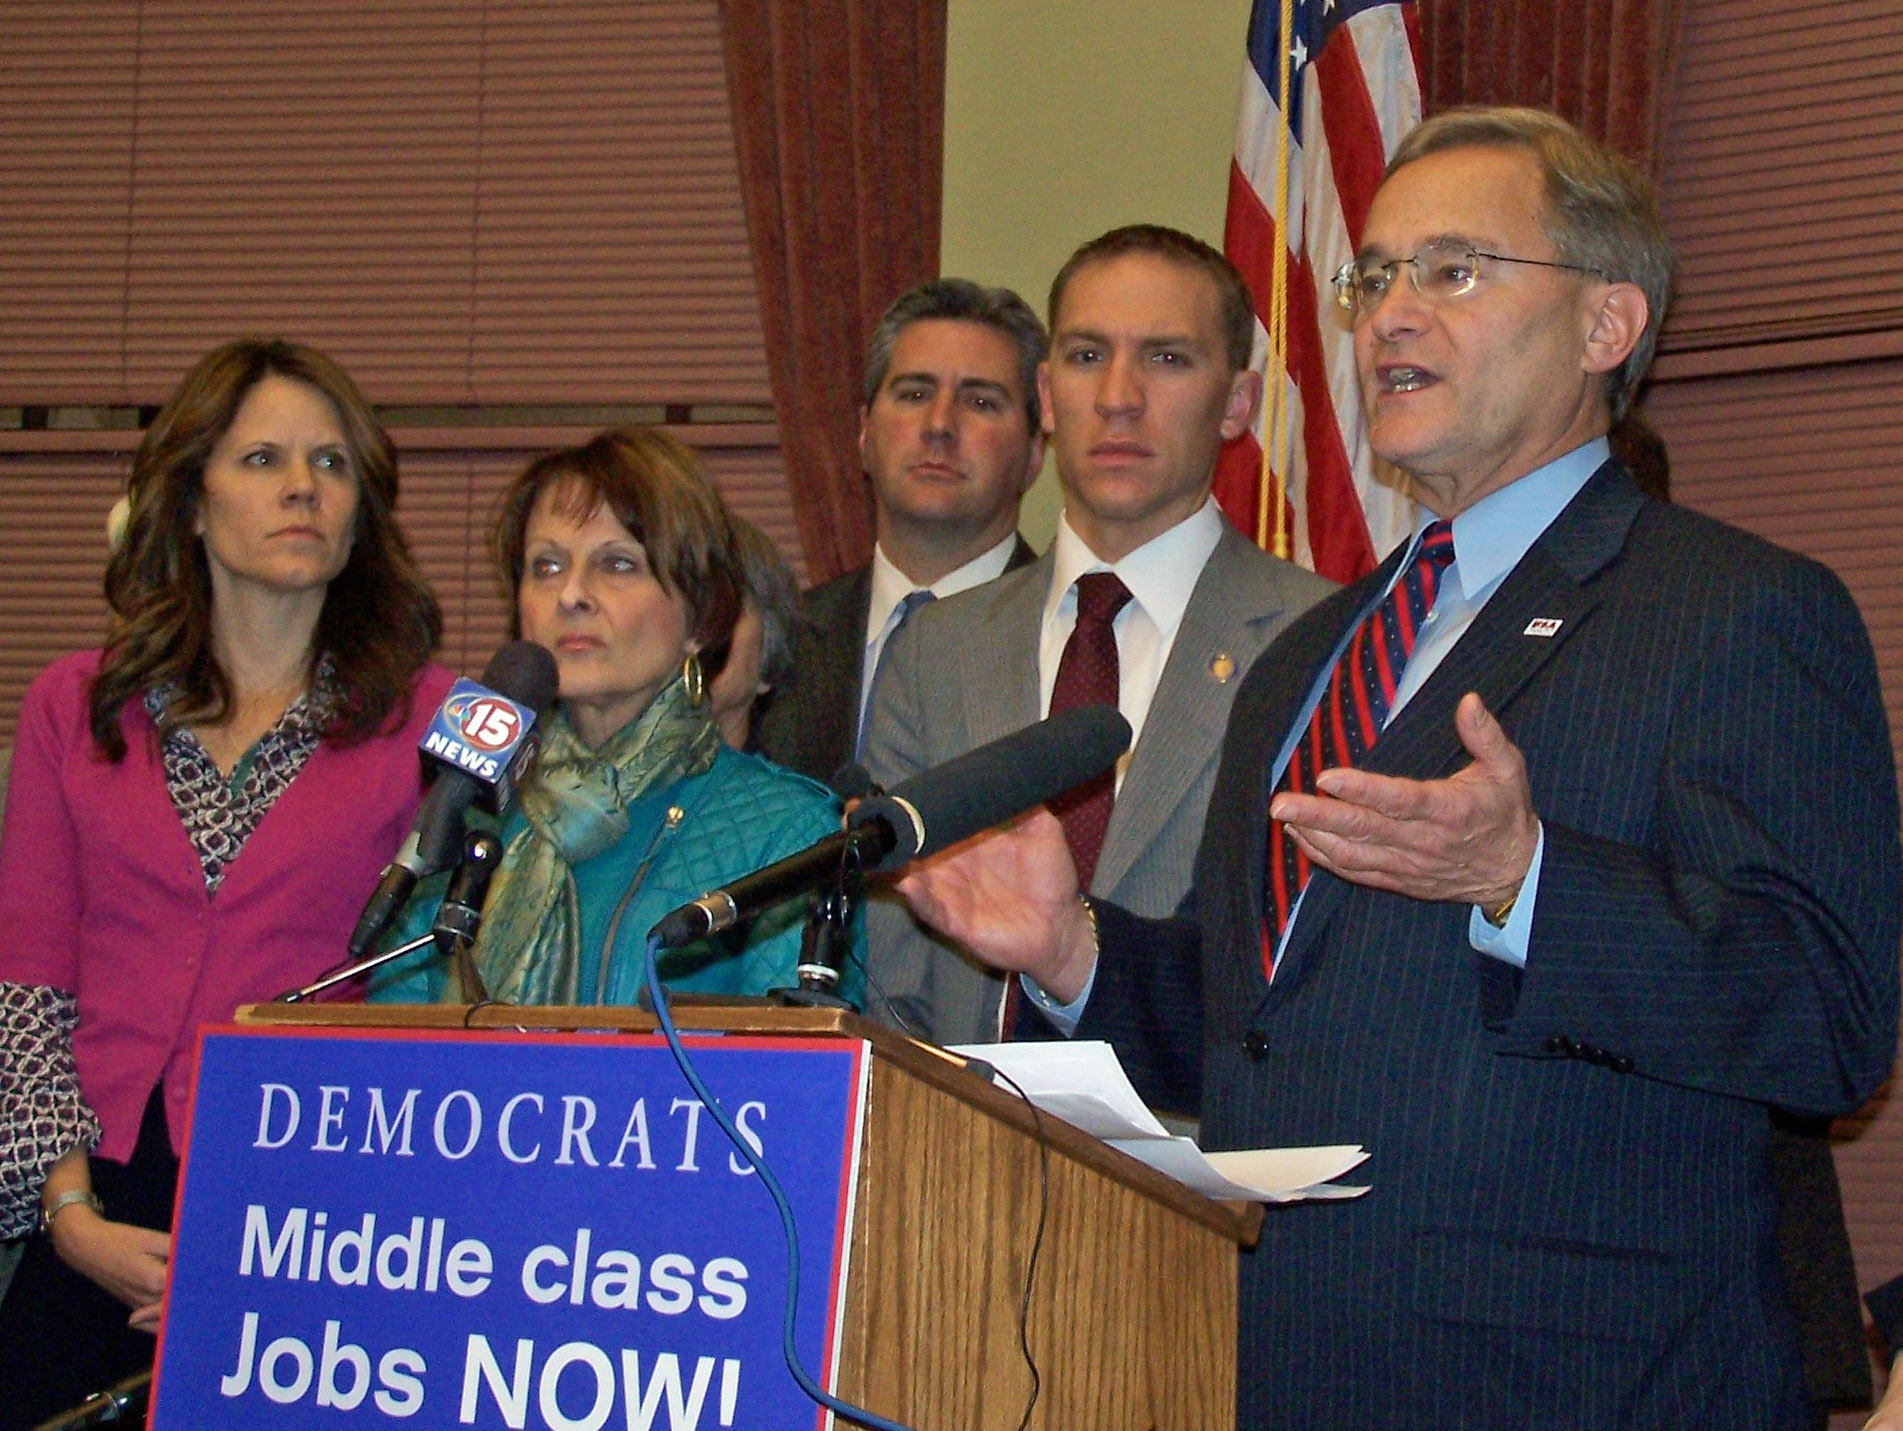 Democratic leaders respond to Governor Walker's State of the State speech. (Photo: Andrew Beckett)